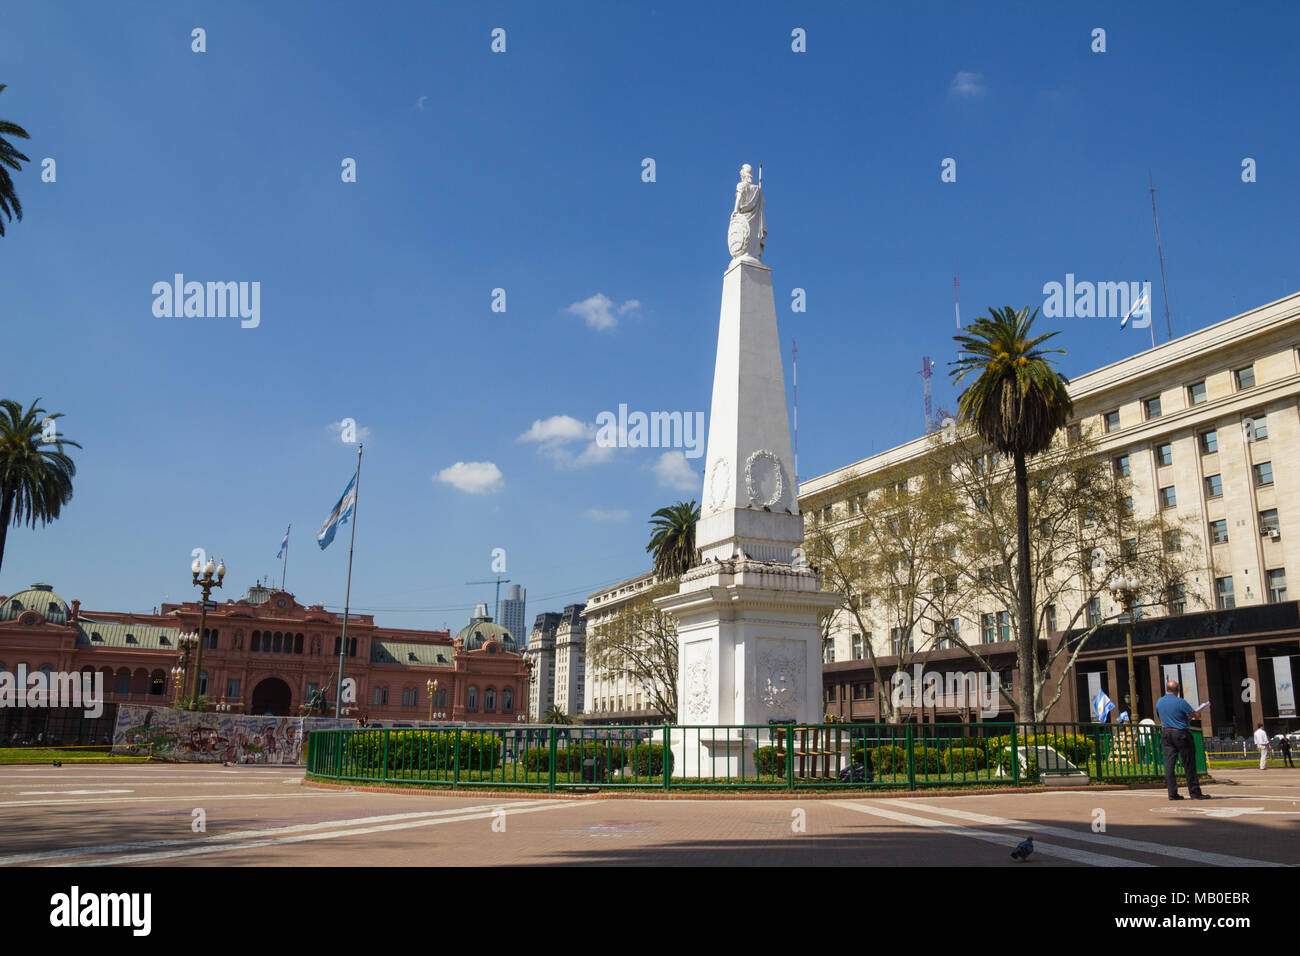 BUENOS AIRES, ARGENTINA - SEPTEMBER 12:The Plaza de Mayo (English: May Square) is the main square in Buenos Aires. In background, the Casa Rosada (Pin - Stock Image